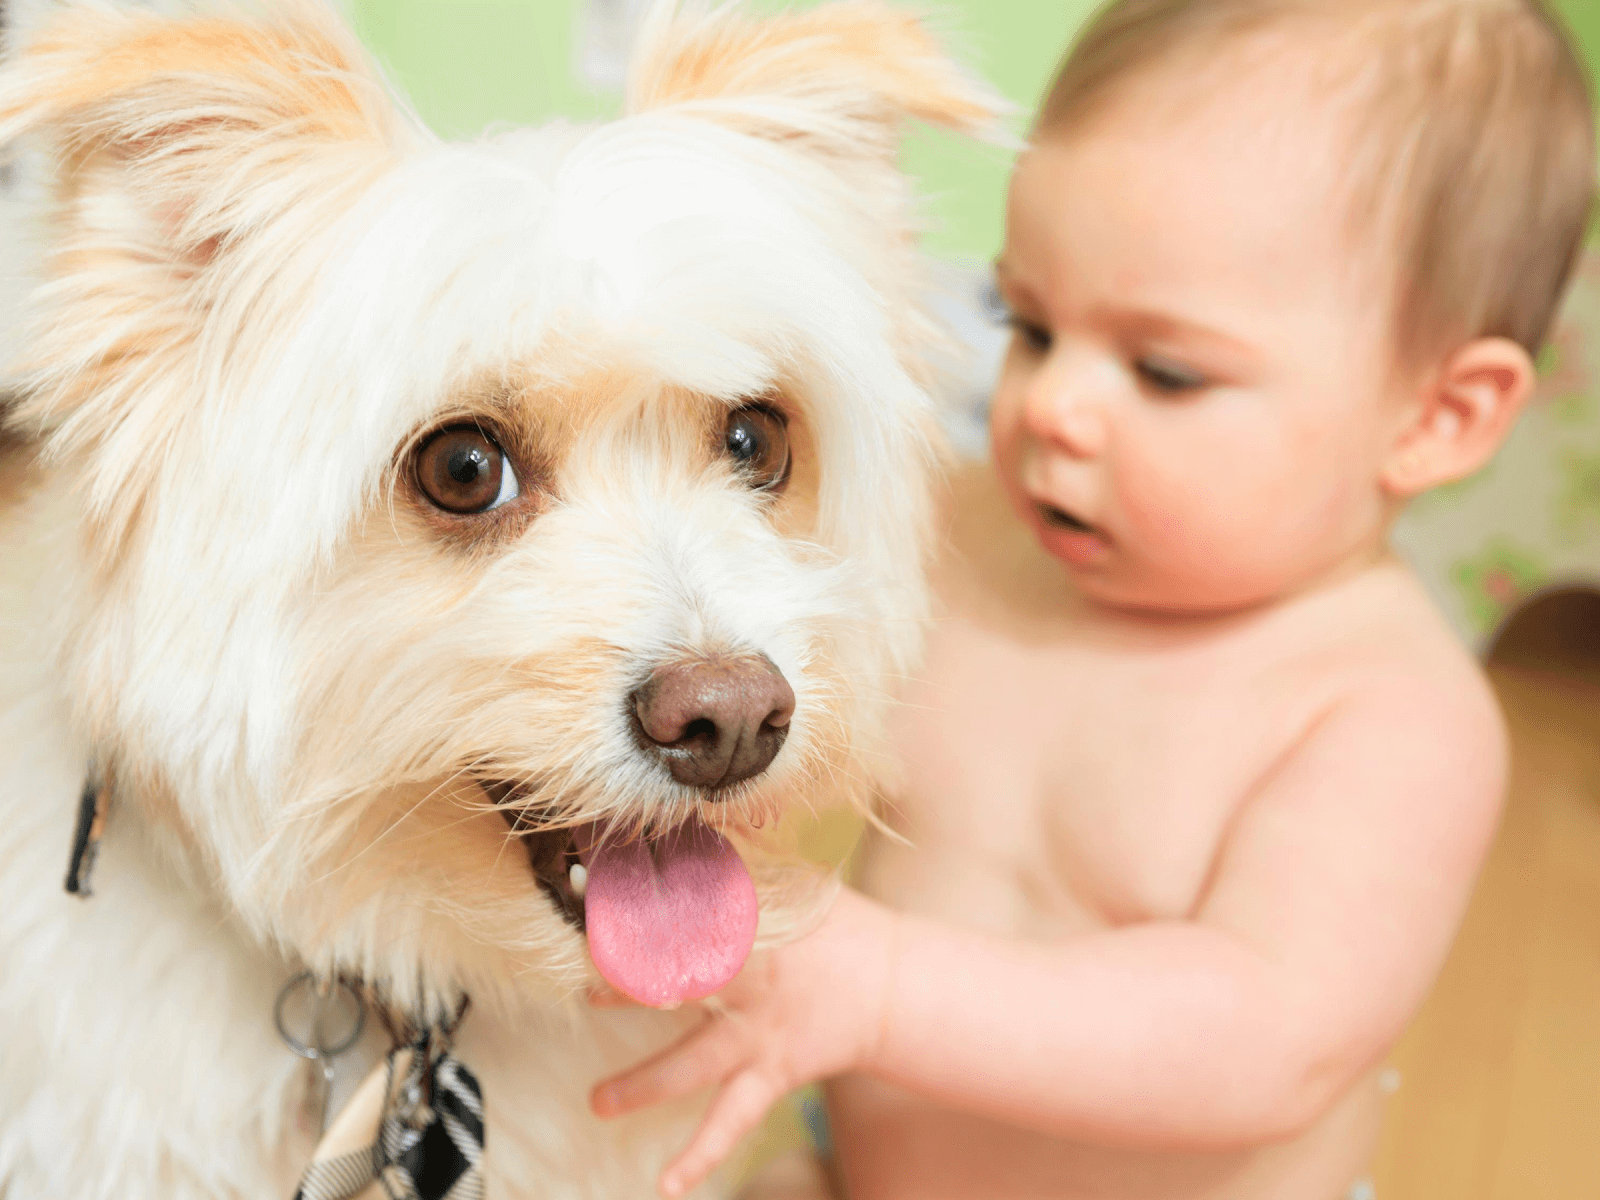 small-baby-playing-with-happy-dog